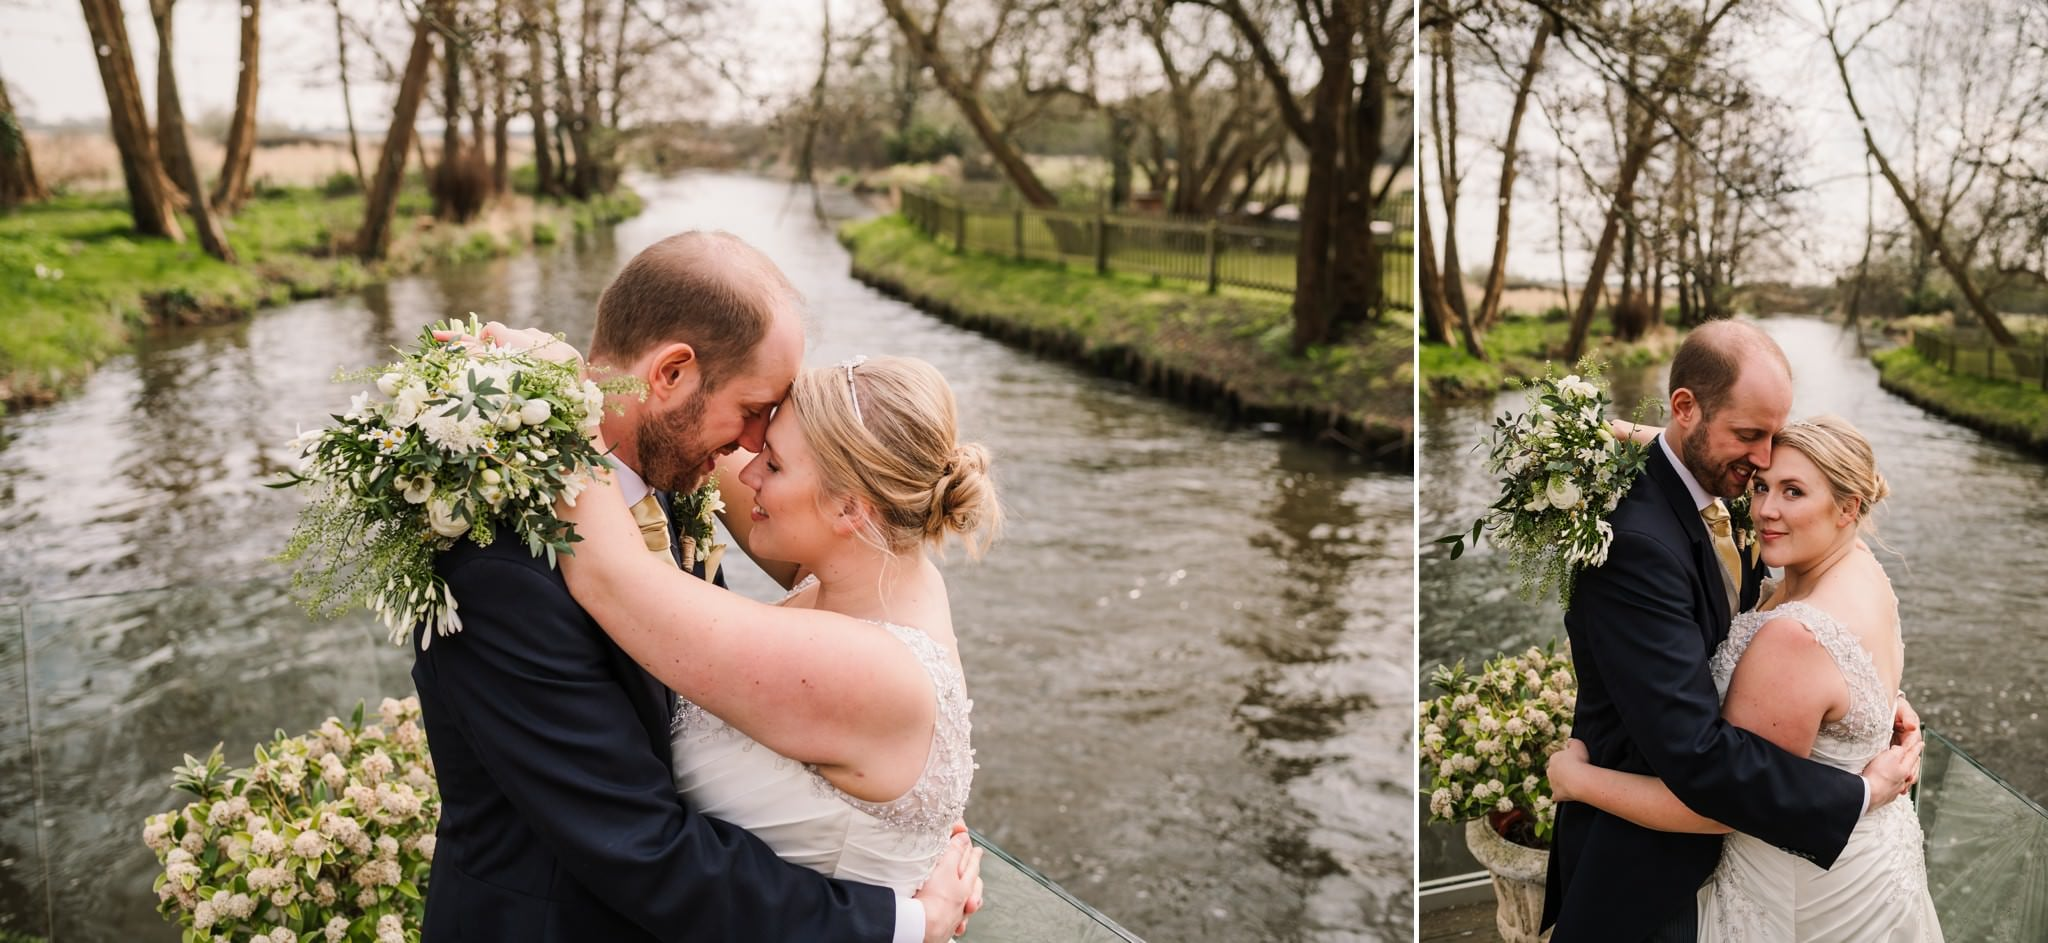 Couple portraits at Sopley Mill Wedding